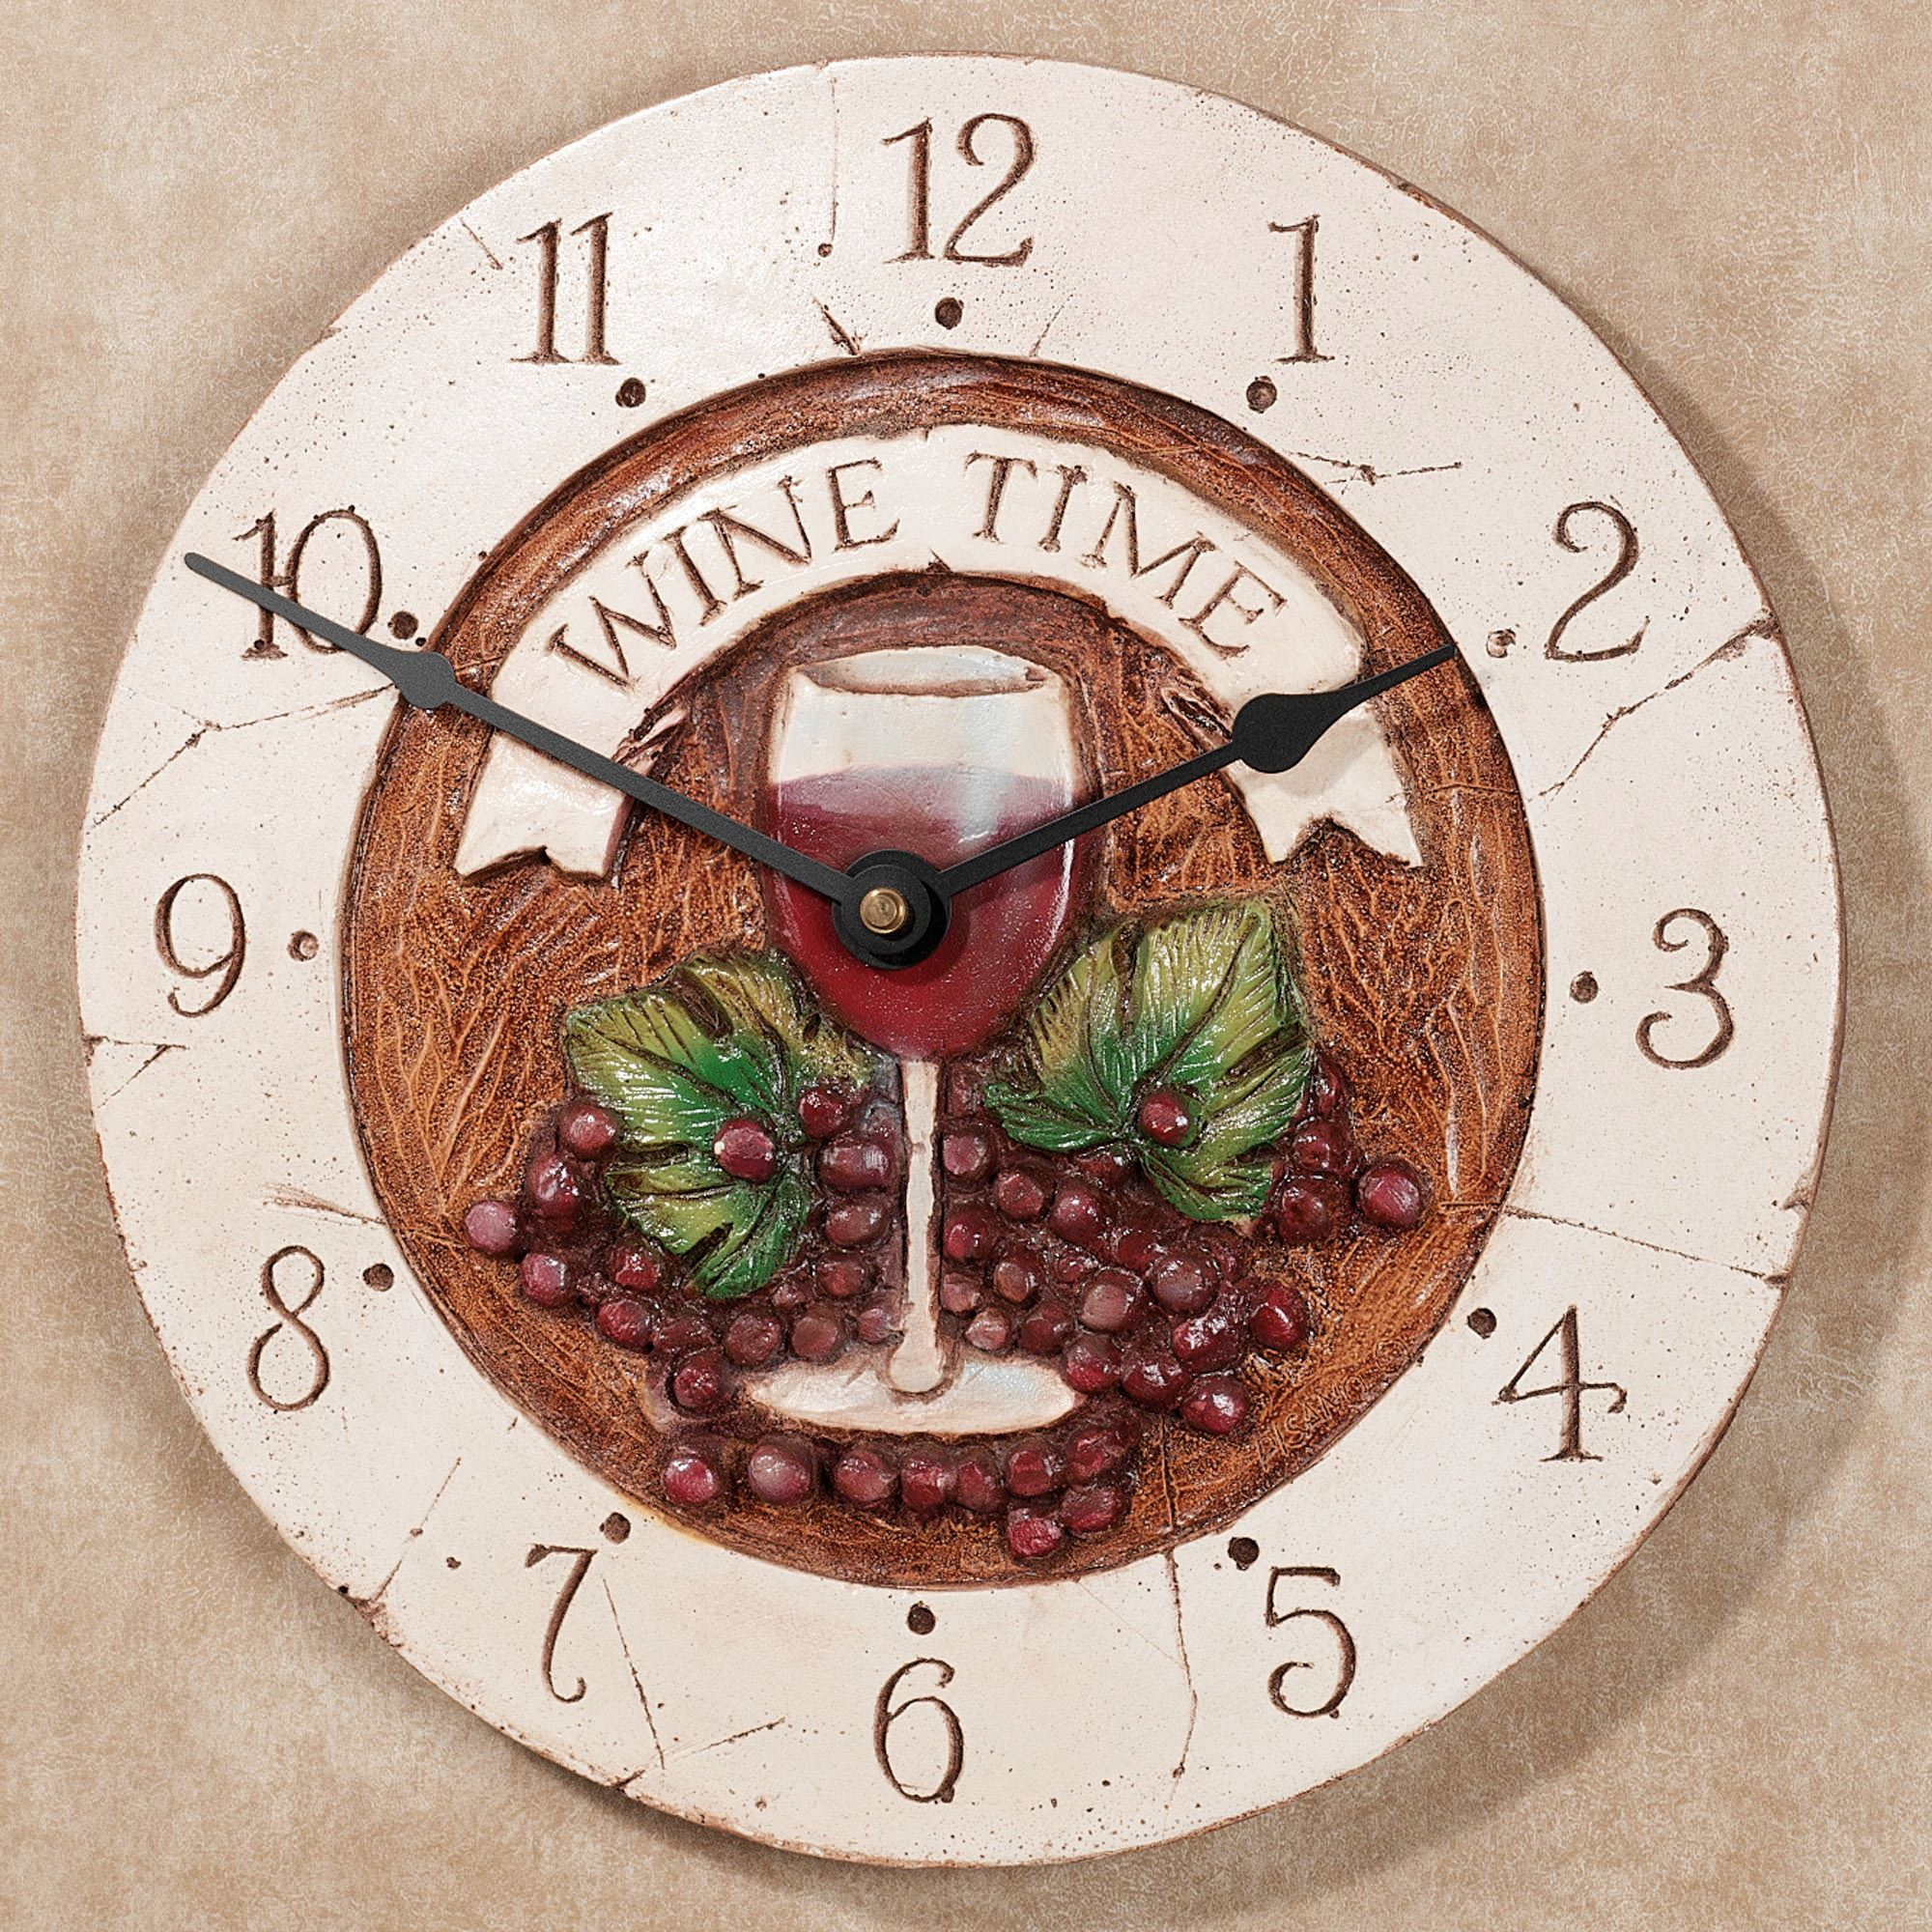 Wine Time Wall Clock. Click To Expand